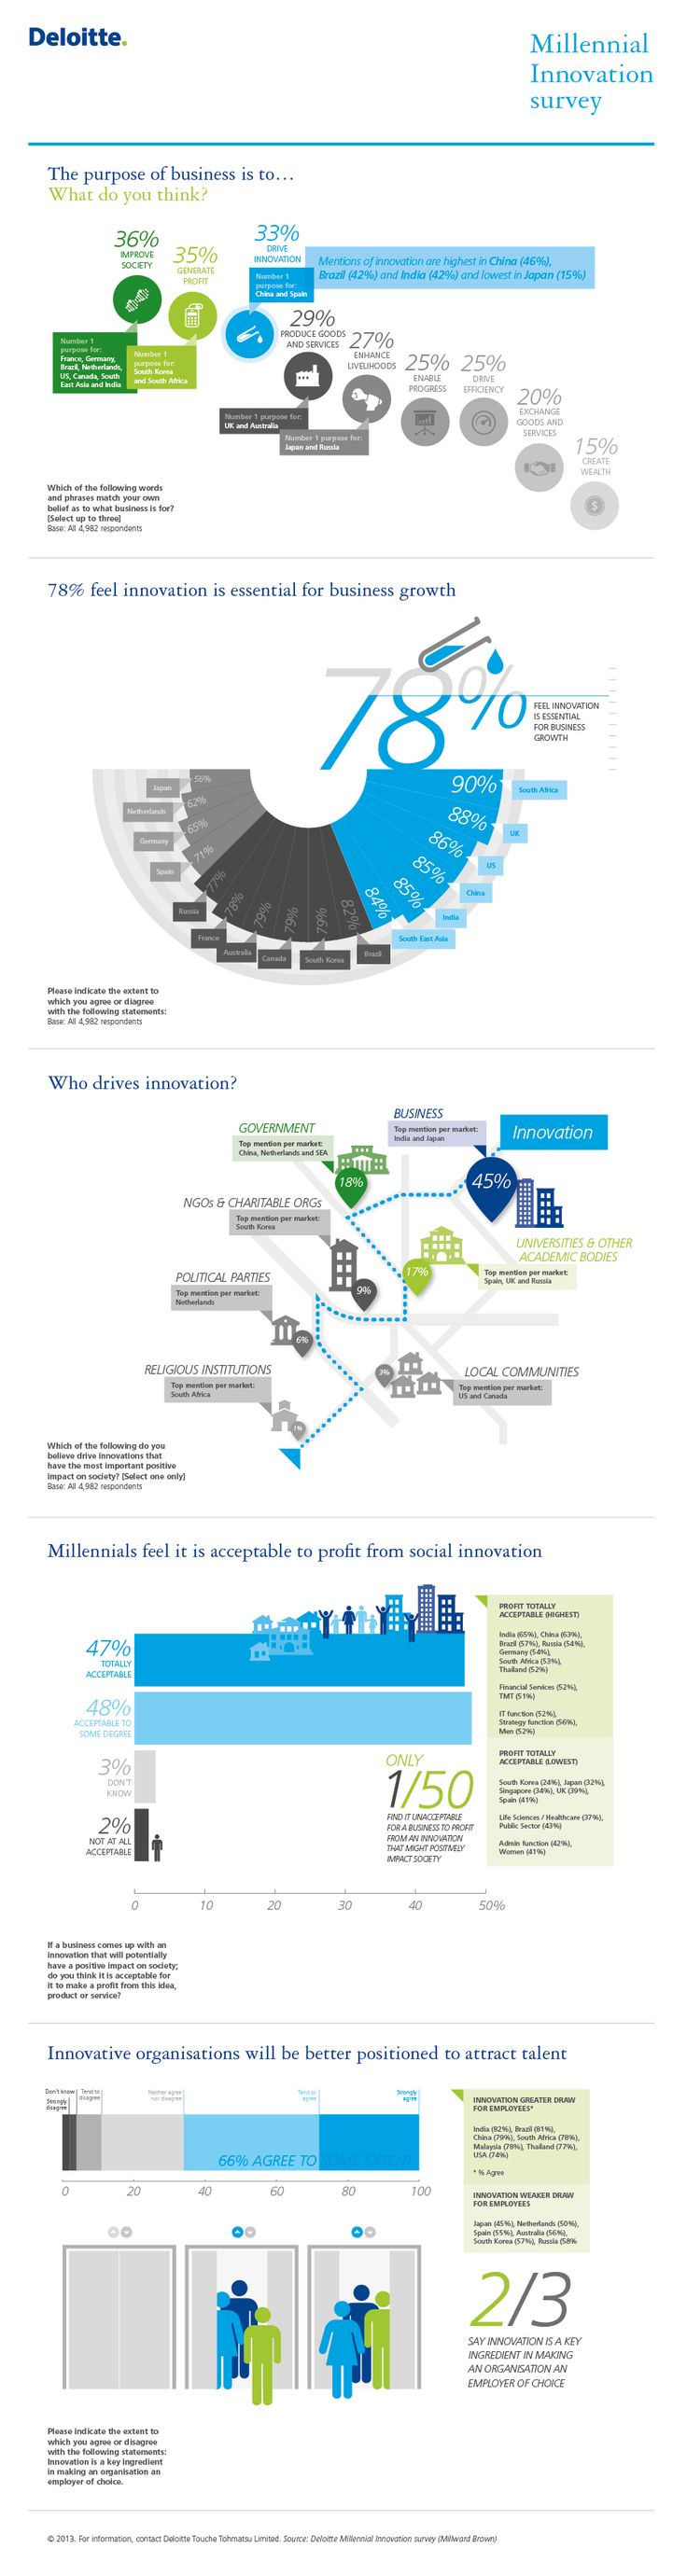 Millennial Innovation survey 2013